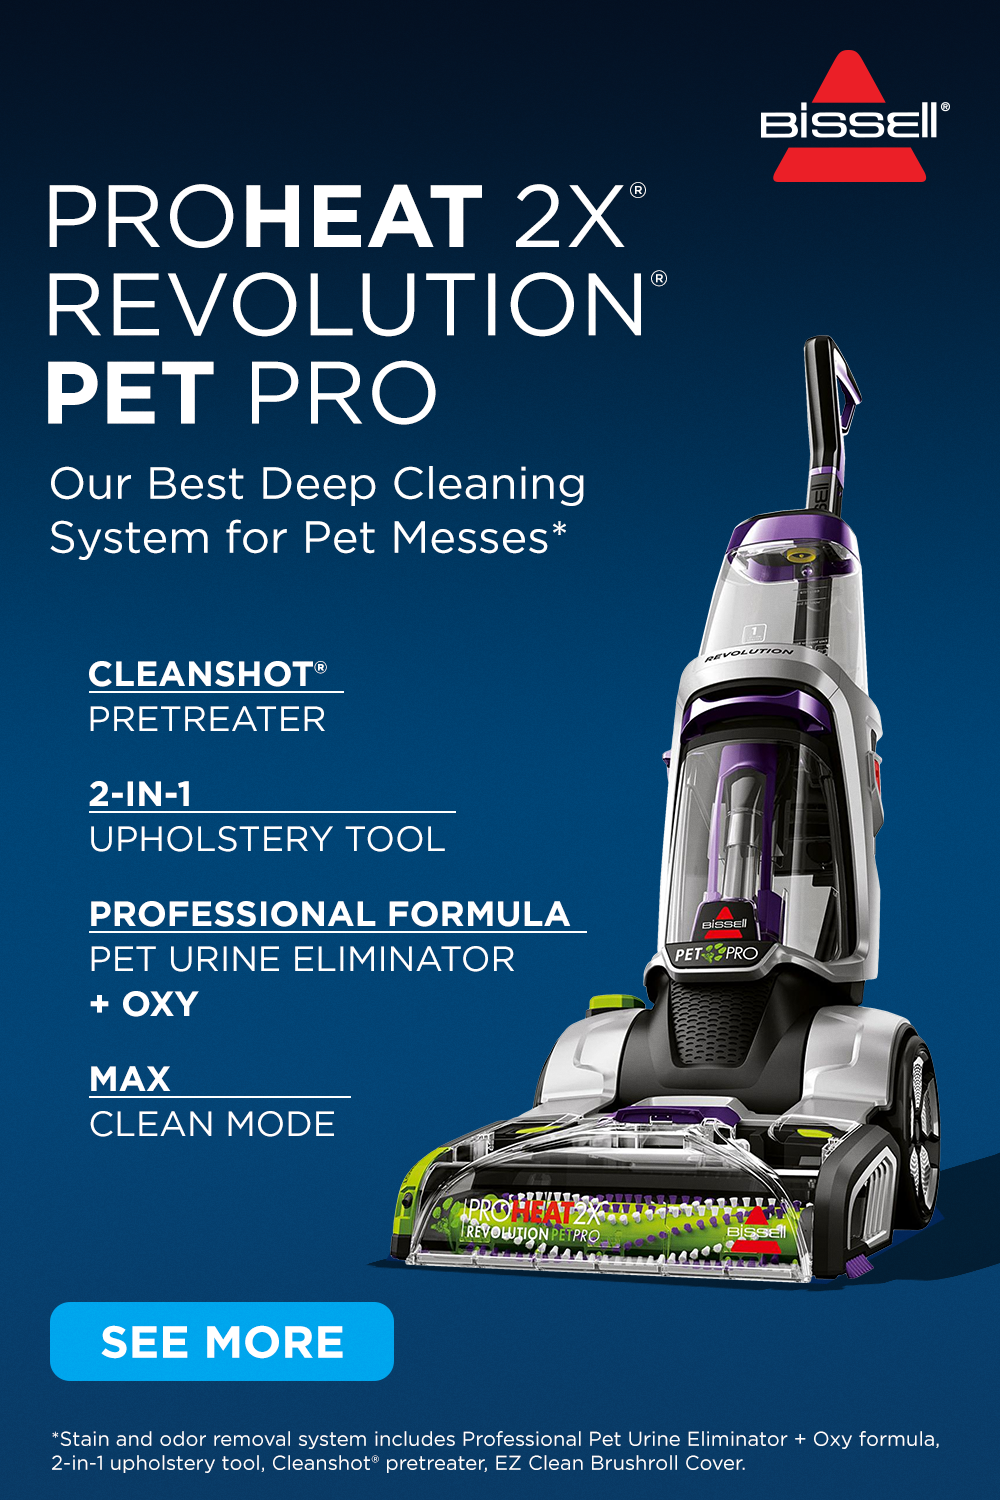 Meet The Bissell Proheat 2x Revolution Pet Pro Your Ultimate Pet Cleanup Tool In 2020 How To Clean Carpet Carpet Cleaners Remove Pet Stains